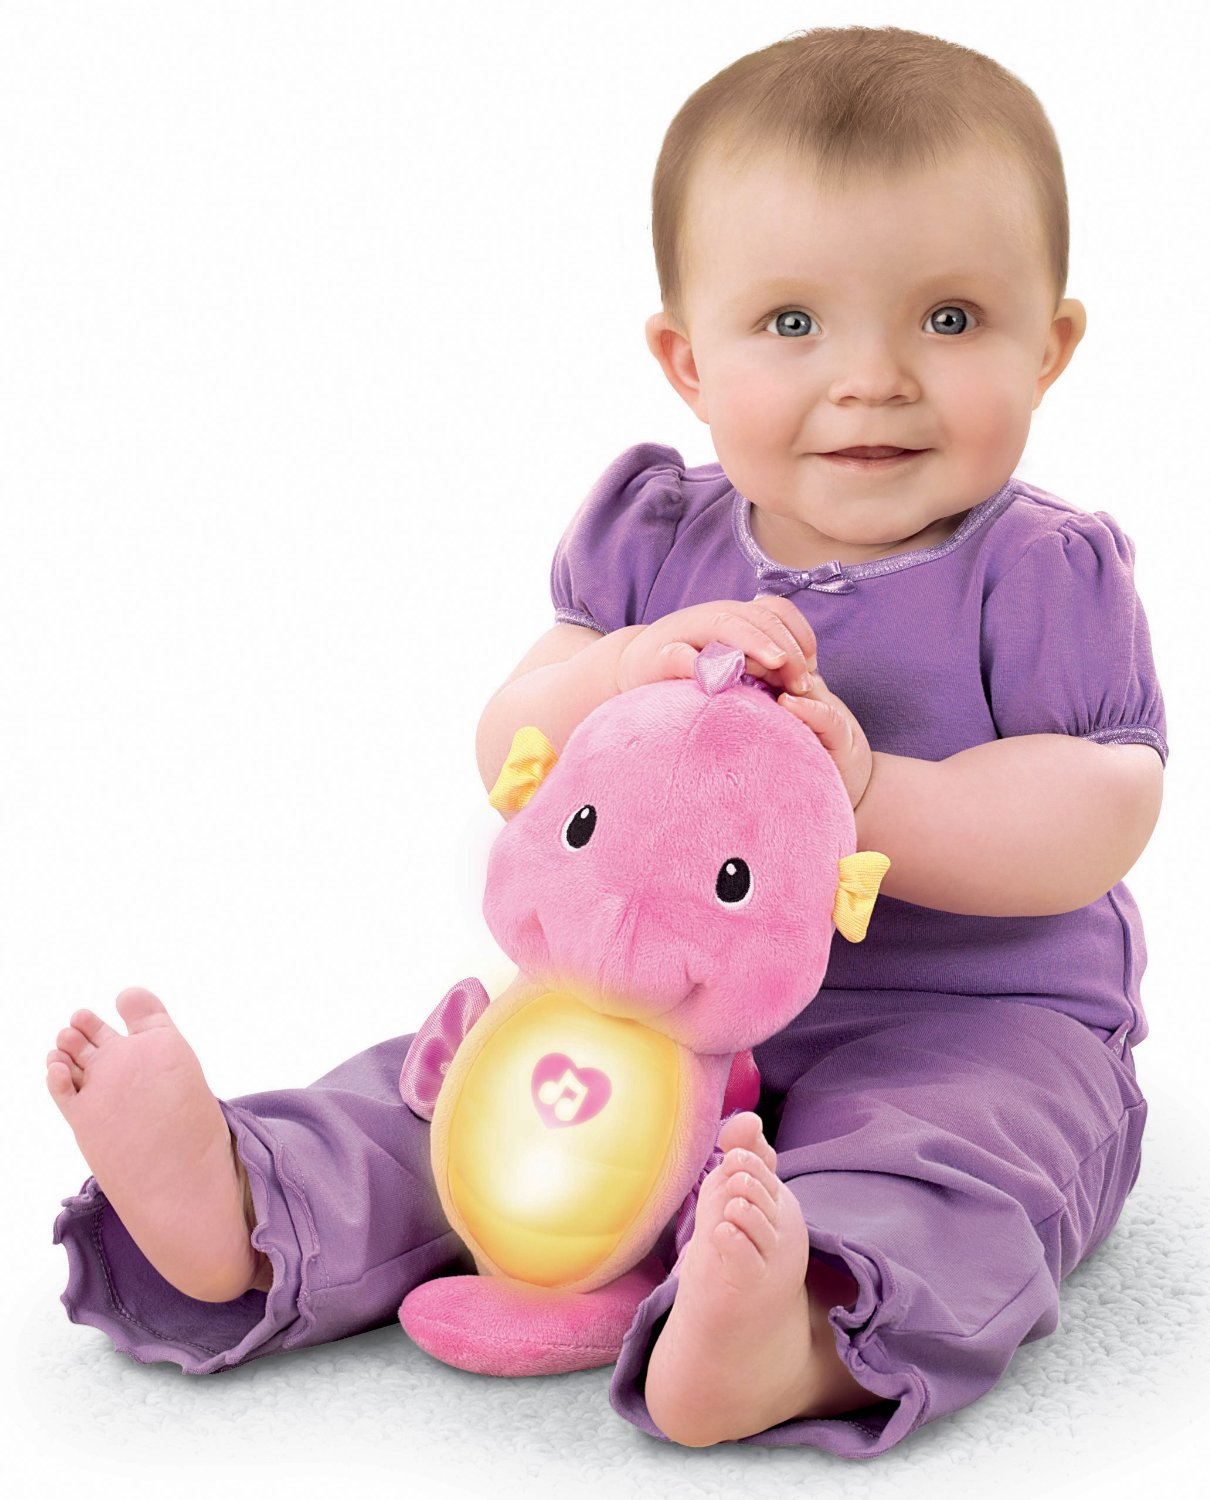 Toys for 1 Year Old Baby